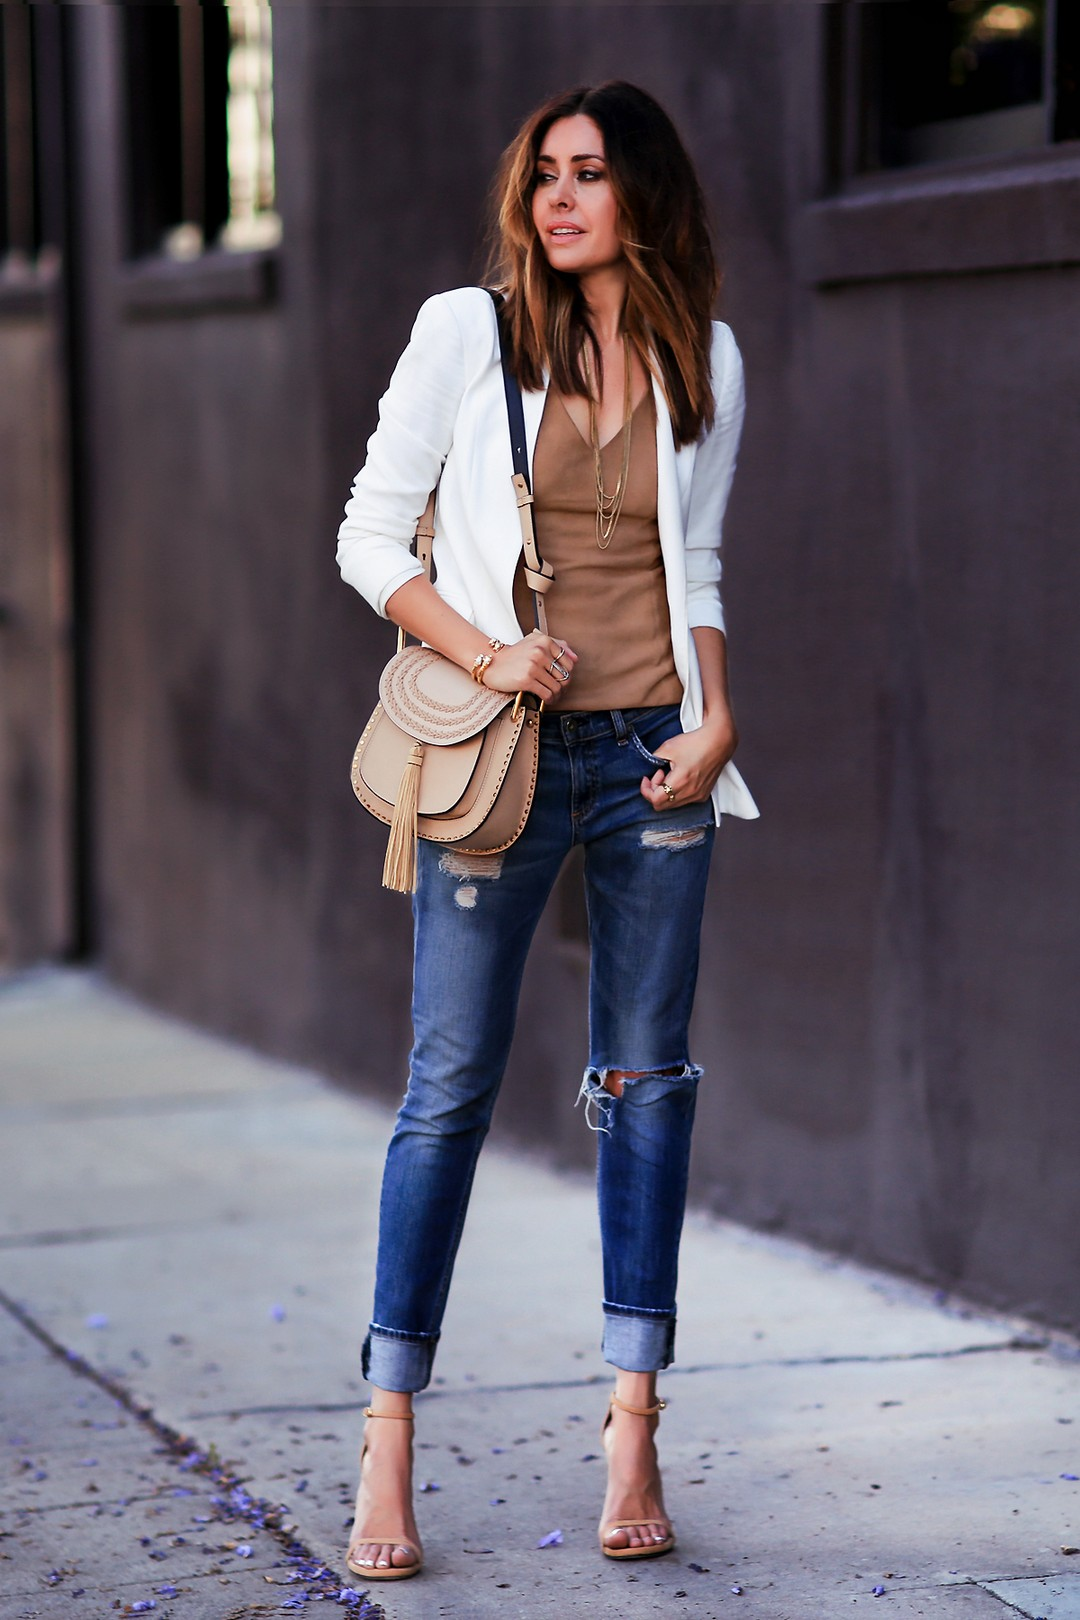 Style of Shoes to Wear with Boyfriend Jeans | FASHIONED|CHIC